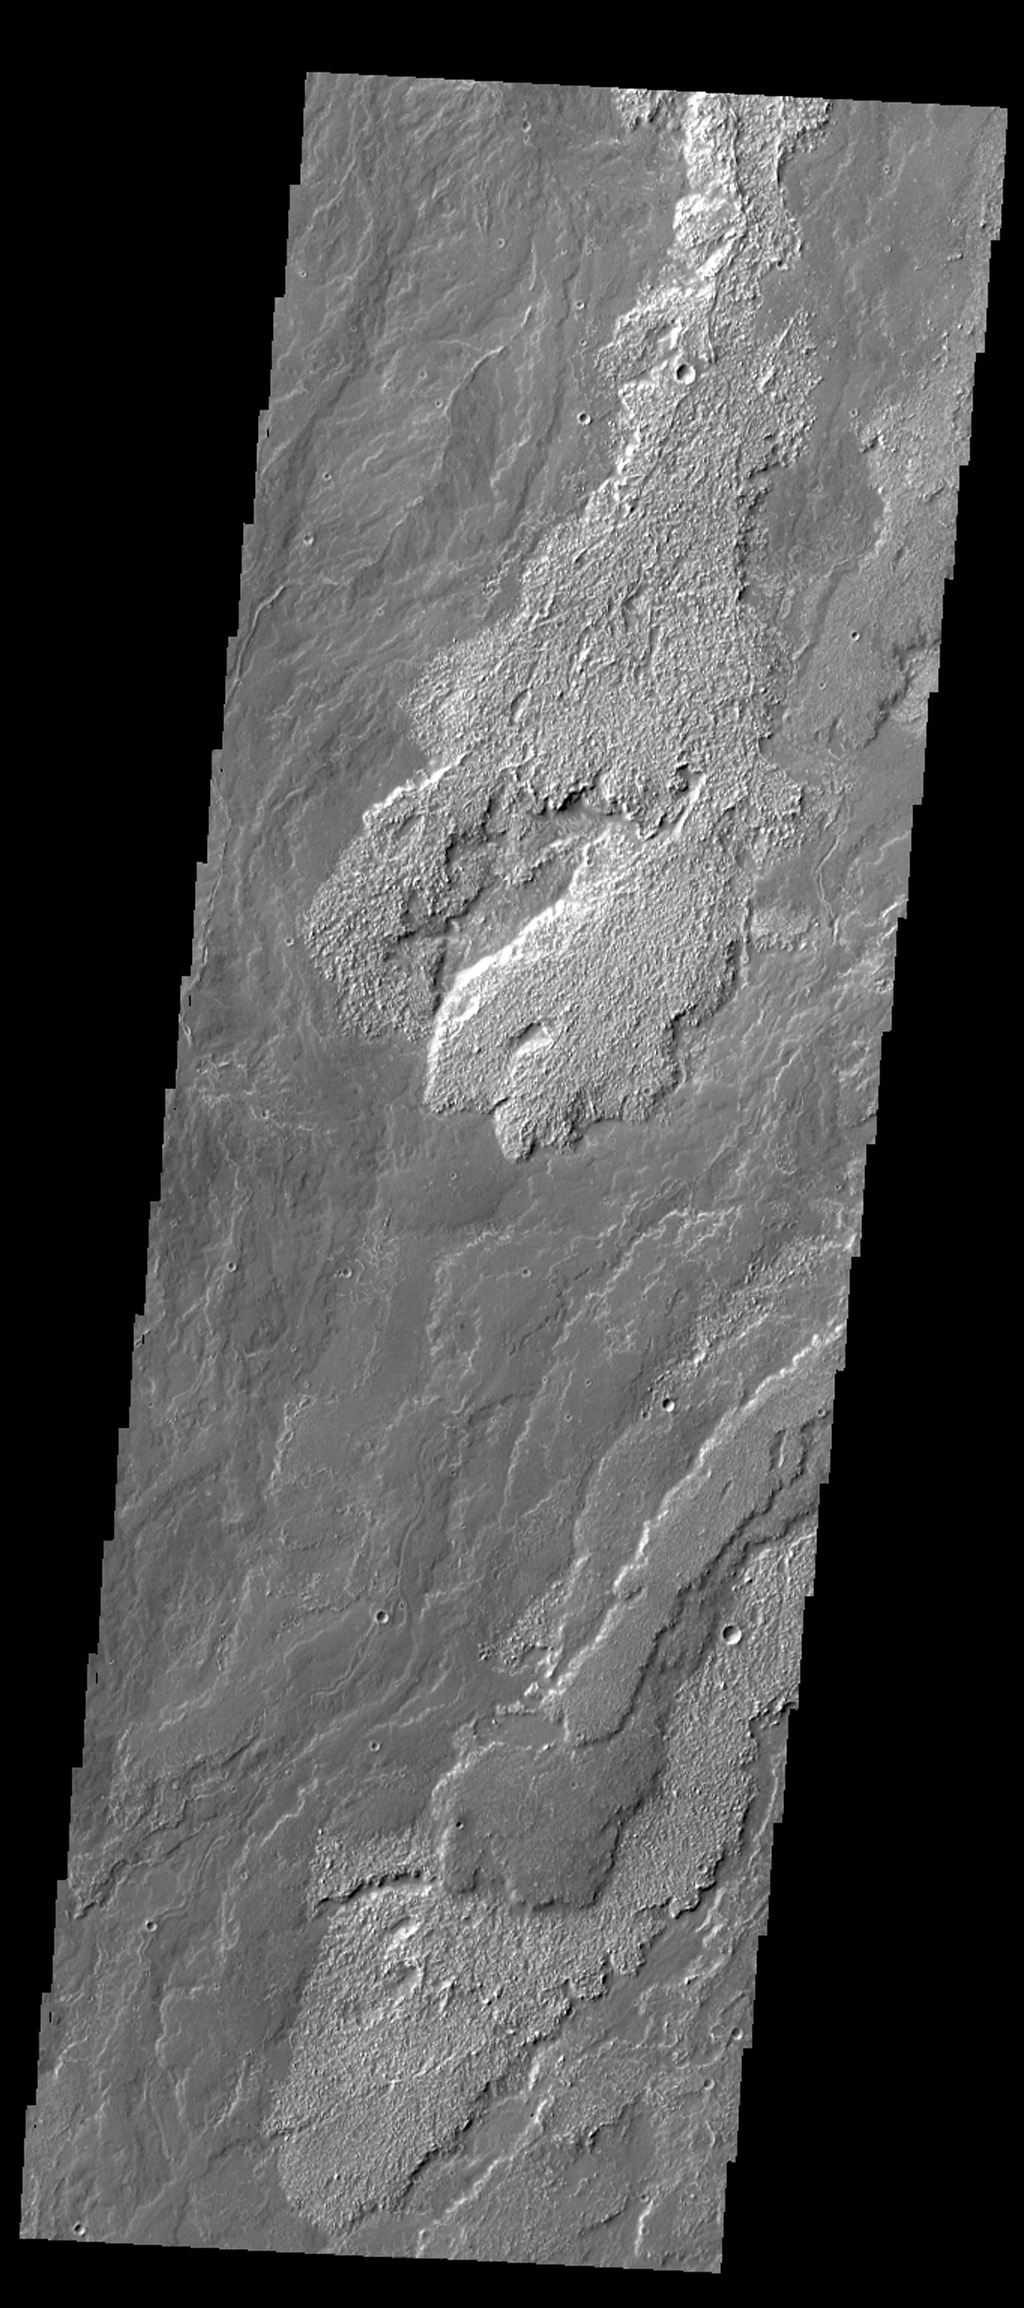 Daedalia Planum is comprised of enormous amounts of lava flows, the majority of which appear to be related to Arsia Mons. In this image from NASA's 2001 Mars Odyssey spacecraft, multiple overlapping flows are evident.